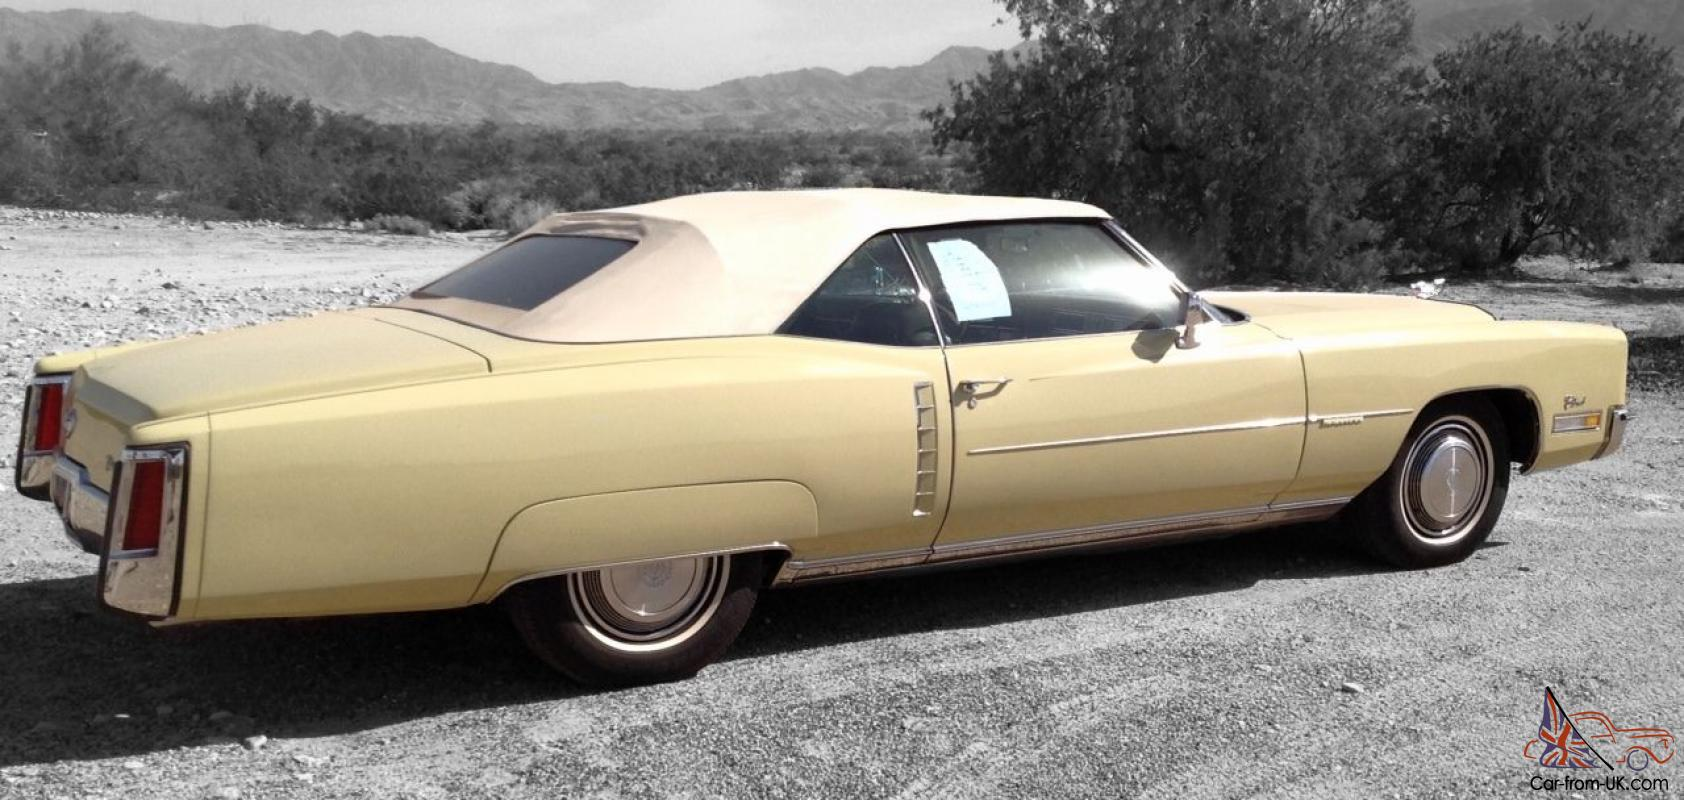 1972 cadillac eldorado base convertible 2 door 8 2l for 1972 cadillac eldorado interior